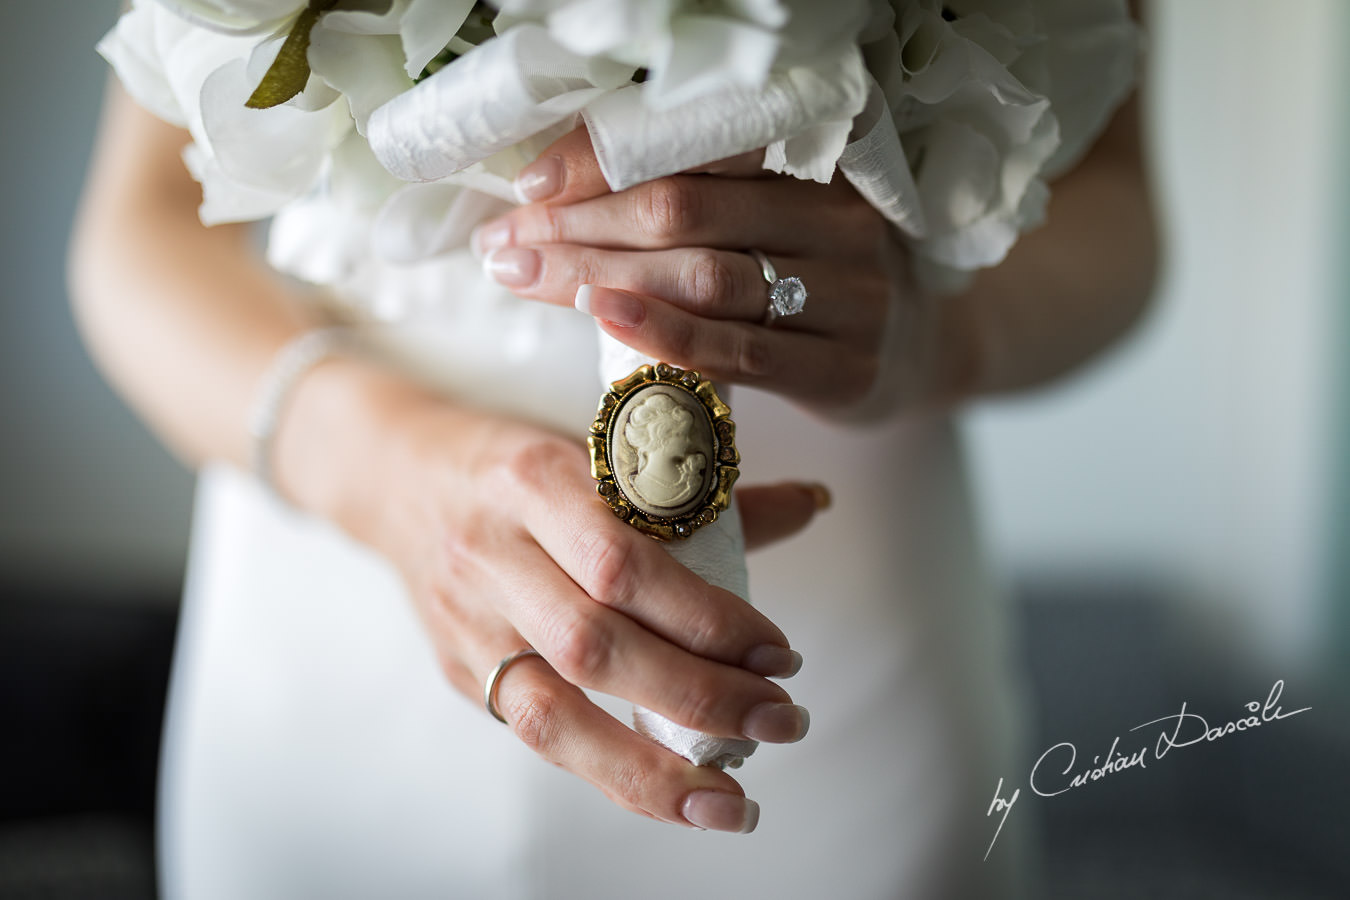 Bridal bouquet, moments captured during an Exquisite Wedding at Asterias Beach Hotel. Photography by Cyprus Photographer Cristian Dascalu.